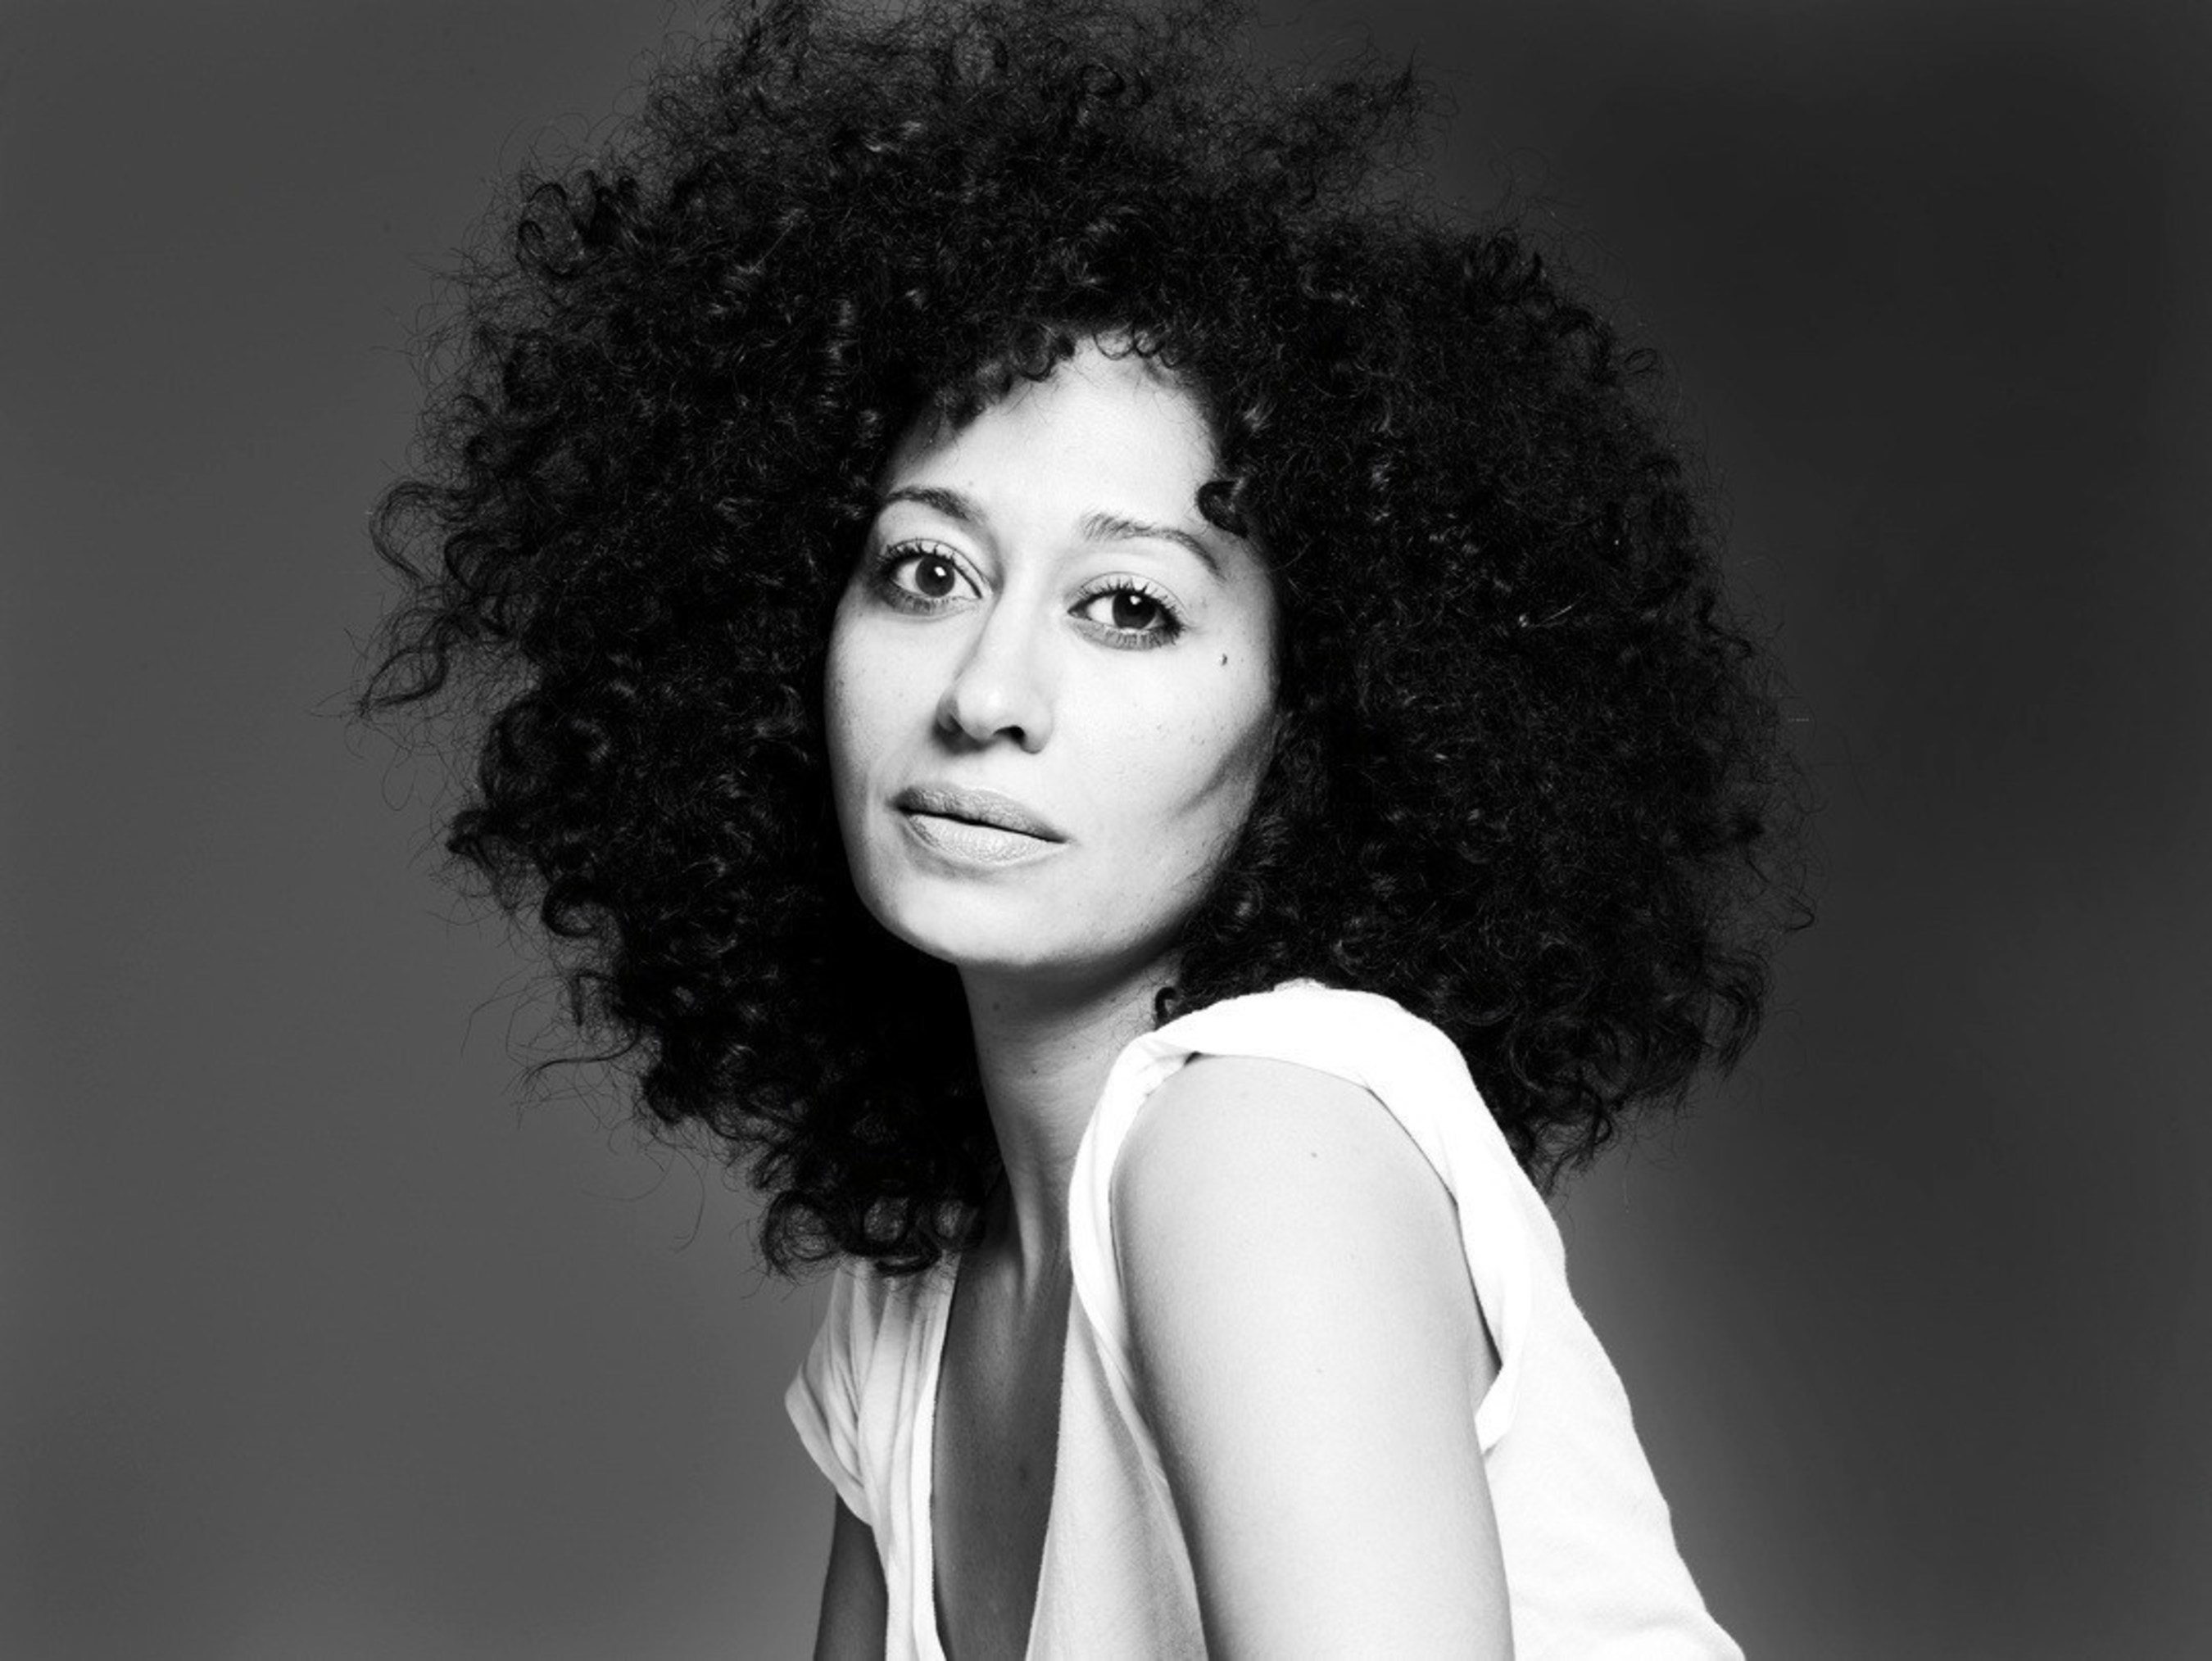 Award winning actress Tracee Ellis Ross has partnered with Optimum Amla Legend, a leader in salon-quality hair products for multicultural women.